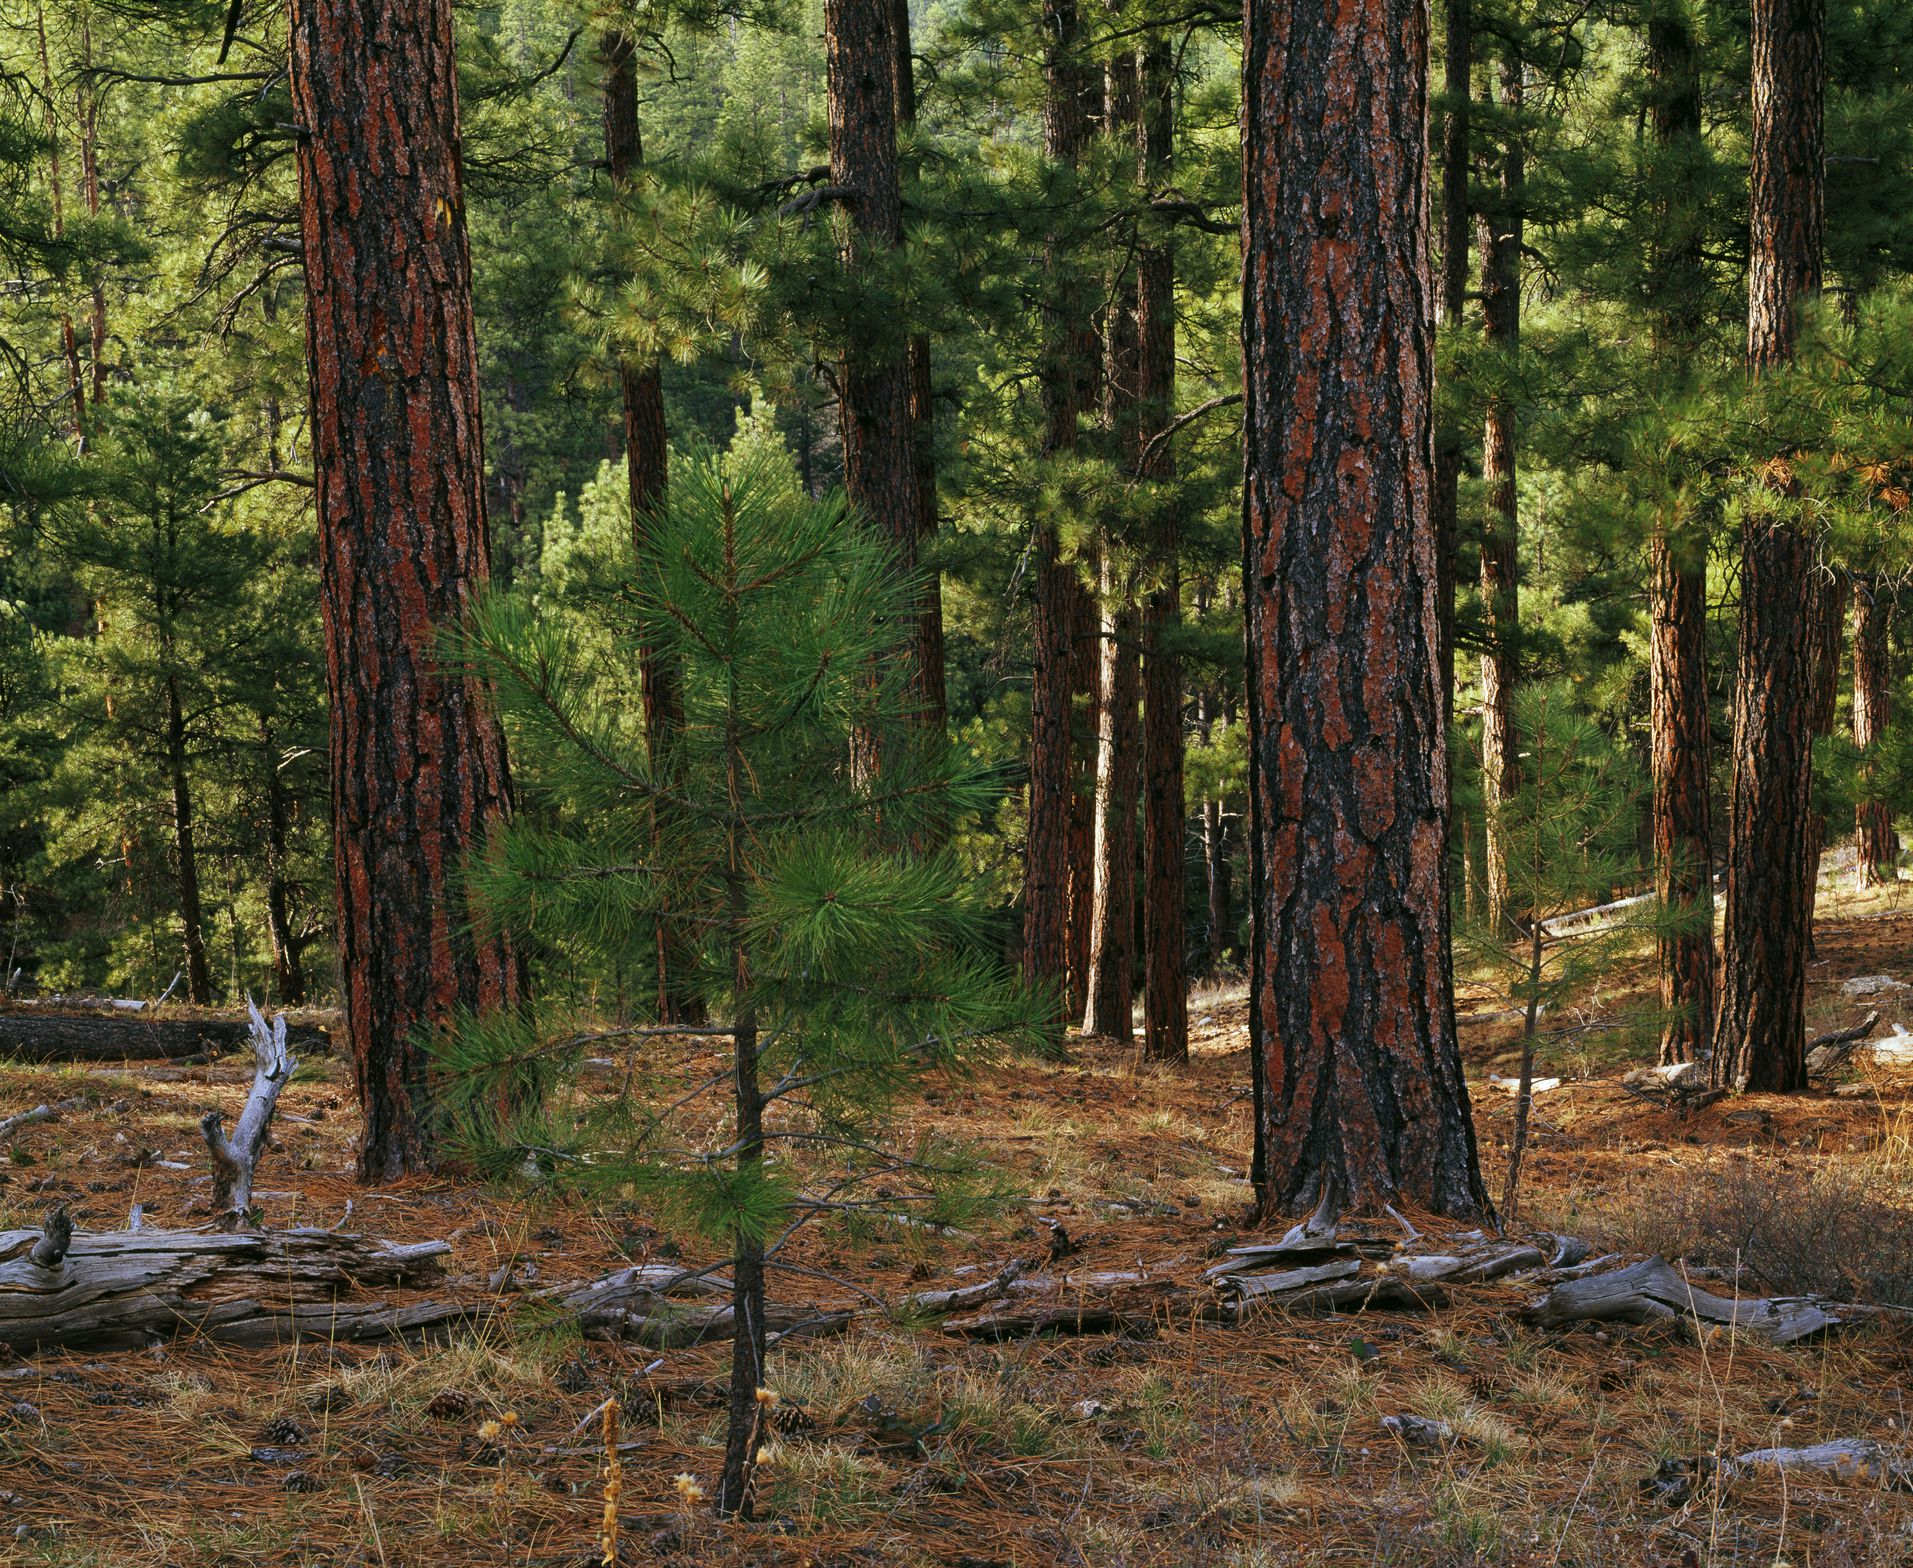 Small sapling growing in ponderosa pine tree forest, Kaibab National Forest, Arizona